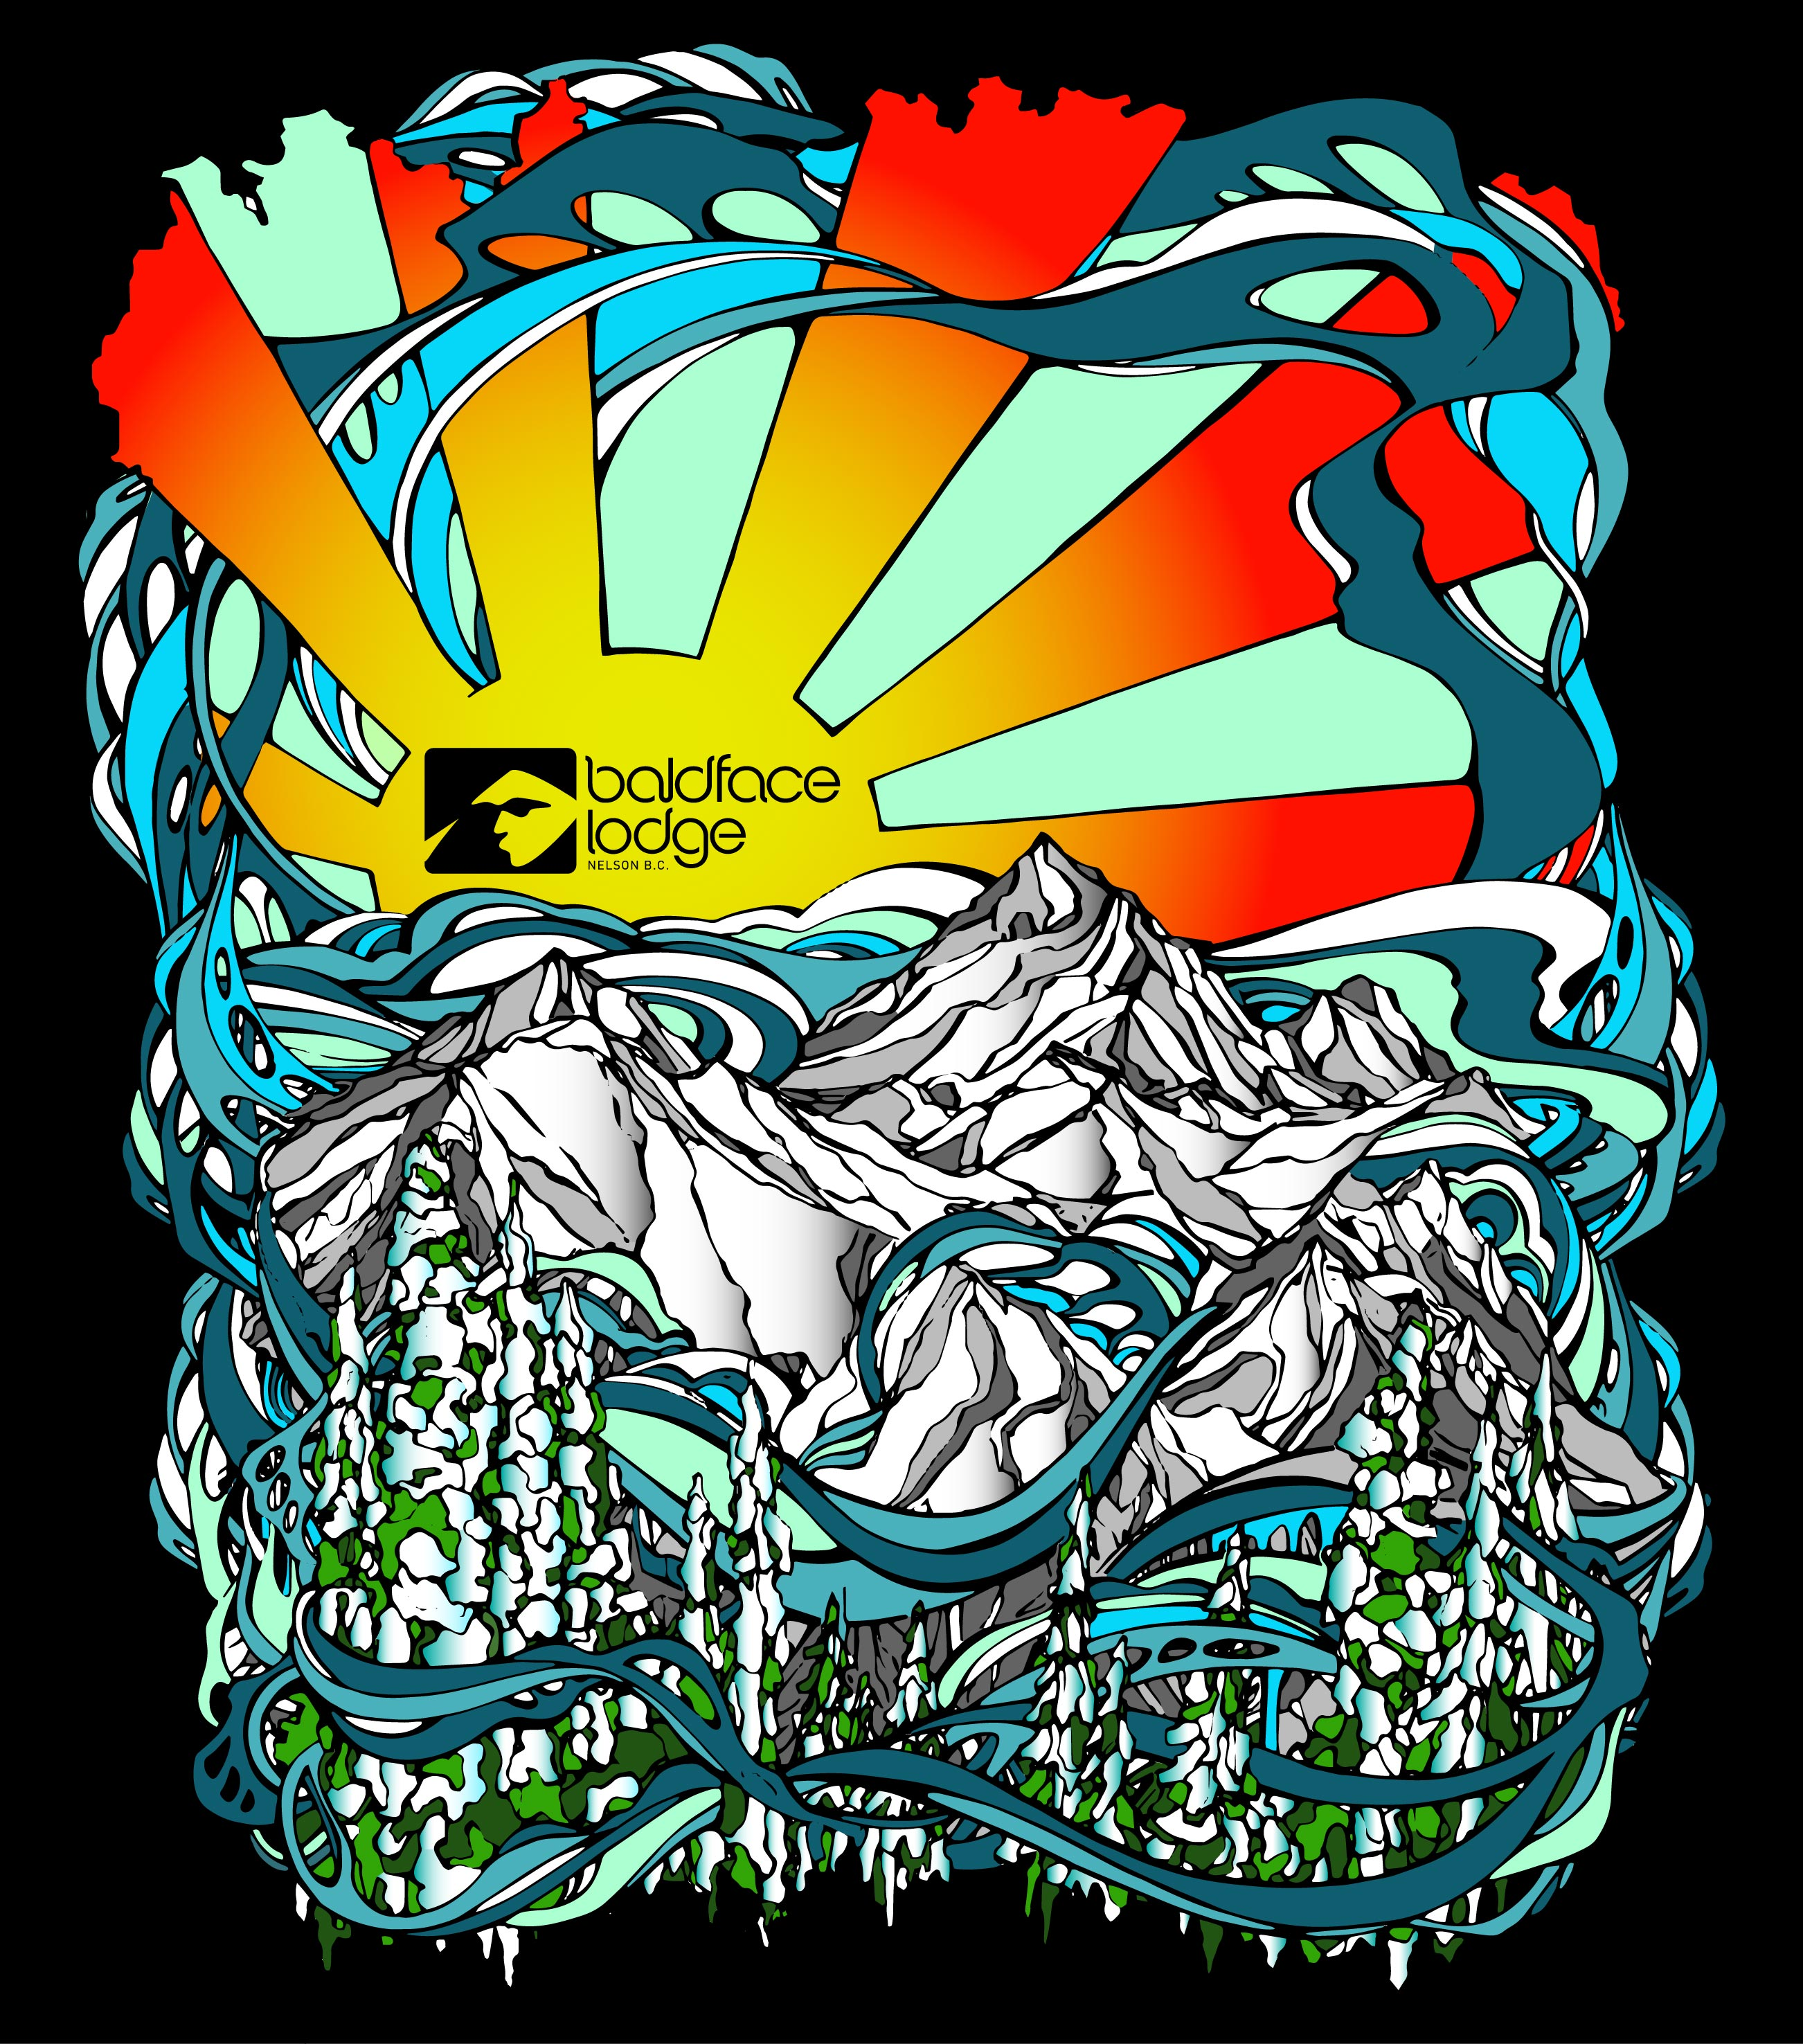 Baldface Lodge Print Ad / Artwork